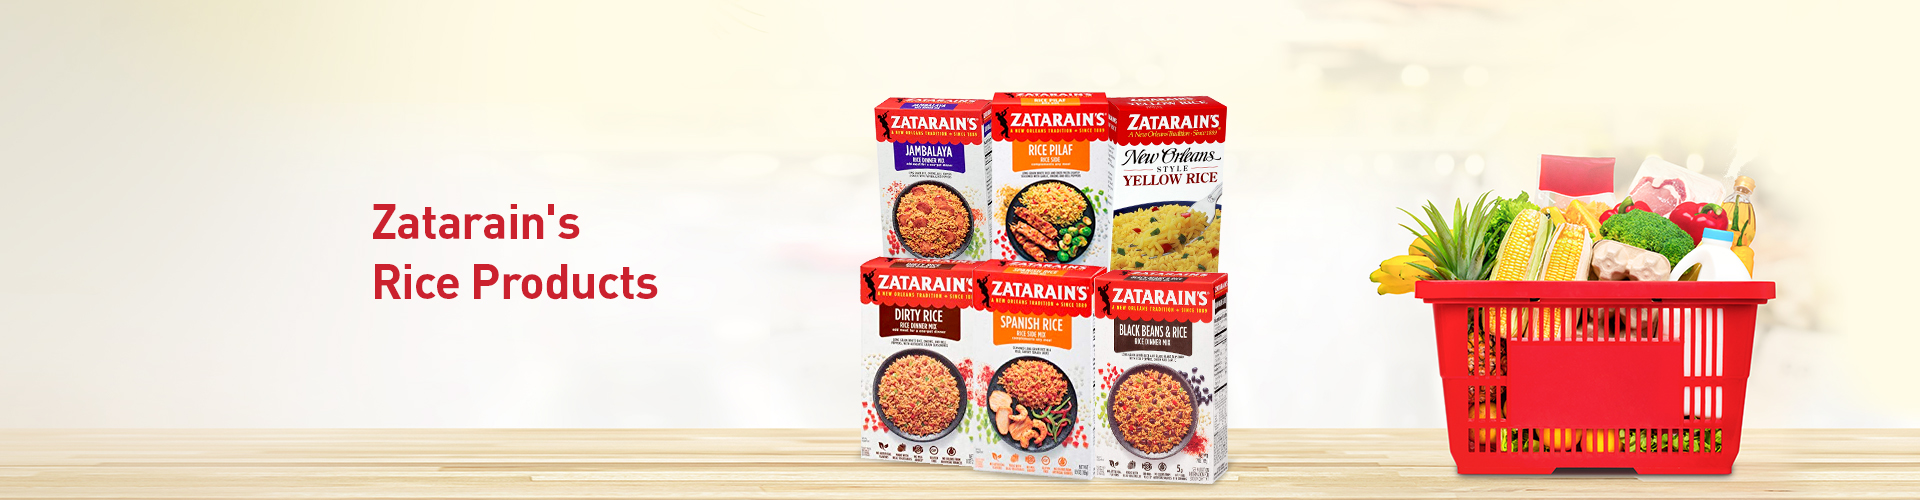 Zatarains Rice Products